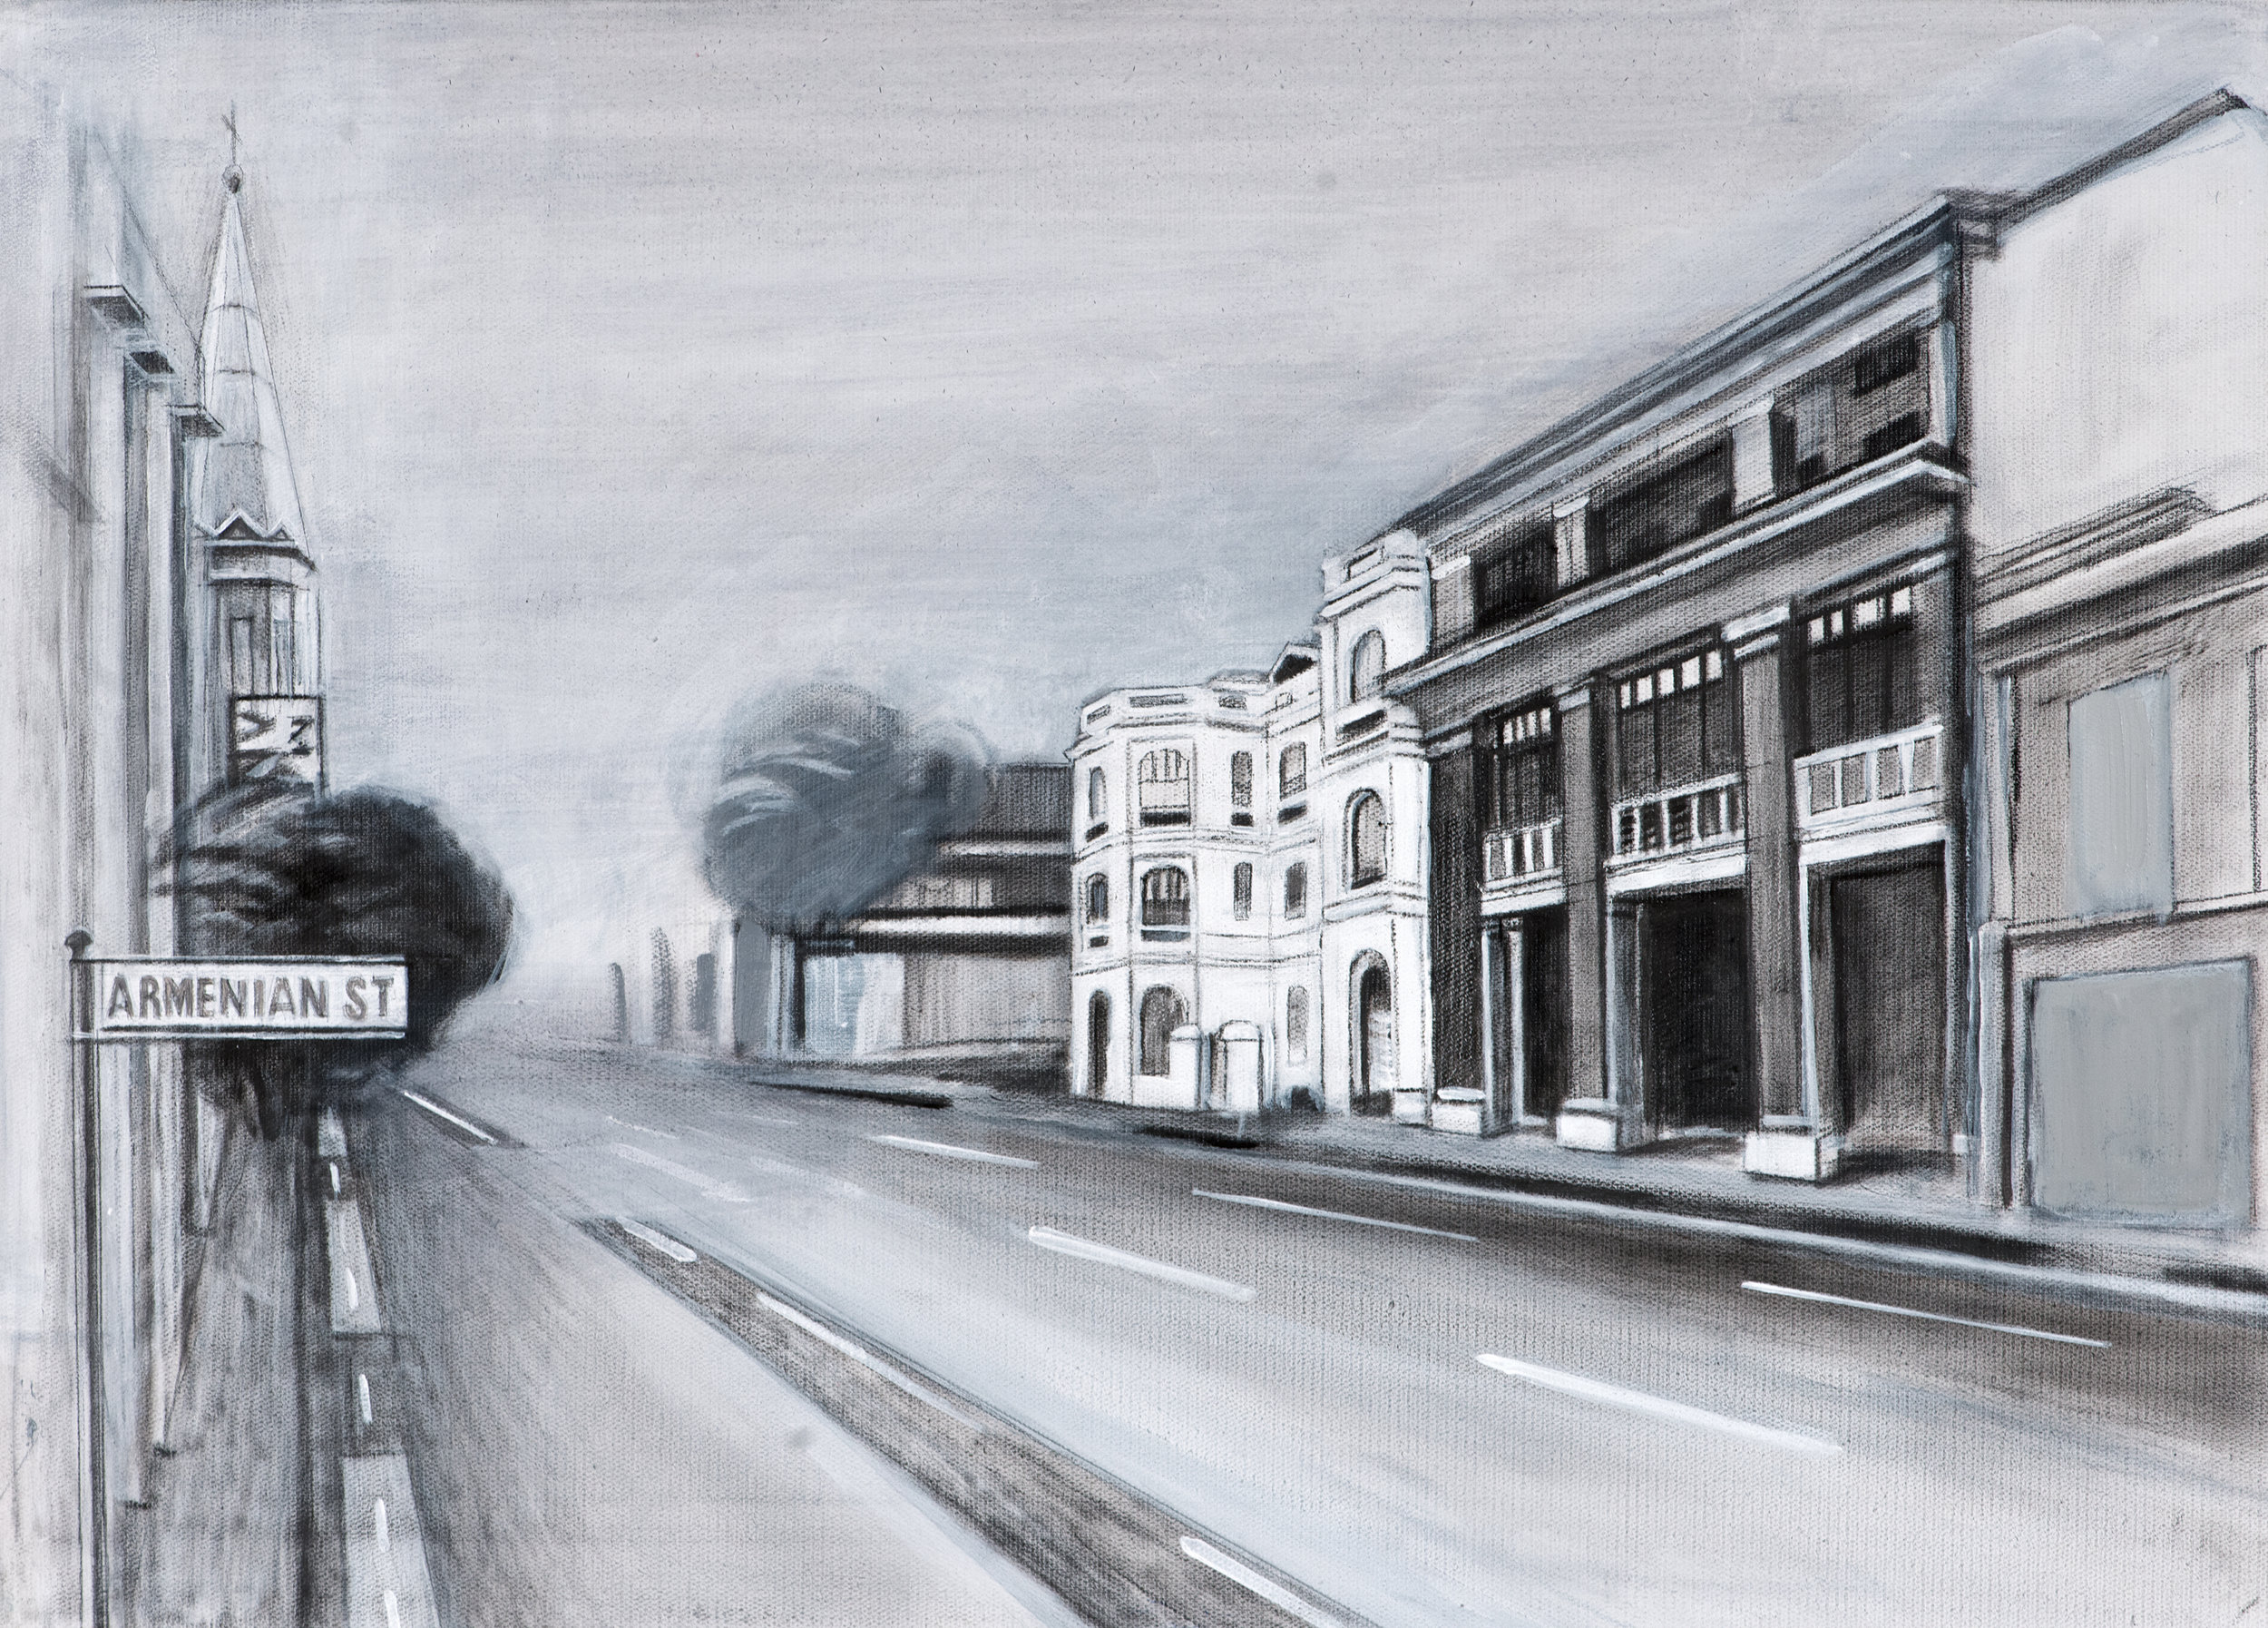 Armenian Street, Singapore , Ararat Sarkissian,2018, oil on canvas, 65 x 46 cm   In 1819 Singapore was established as a British trading post. Armenian merchants from around the region soon recognised the prospects of this port and established a small community, which has never exceeded 100 residents. Though small, the Armenian community has had a great impact on Singapore. In 1835 the community erected the Armenian Apostolic Church of St. Gregory the Illuminator; it is the oldest Christian church in Singapore and was designated as a national monument in 1973.  The world's first cultivated orchid hybrid was bred by Ashkhen Hovakimian (Agnes Joaquim) in the 1880s and carries her name. In 1981 the  Vanda Miss Joachim Orchid was proclaimed as Singapore's national flower.  Today, Singapore's Raffles Hotel is a part of a large chain of Raffles international hotels. The hotel was opened in 1887 and was managed by Tigran Sarkies. The Sarkies brothers - Martin, Tigran, Aviet, and Arshak, originally from Isfahan in Persia, became the leading hotel owners in the East with properties in Myanmar, Malaysia and Singapore.   The Straits Times is currently the most widely-read newspaper in Singapore and one of the oldest English-language newspapers in the region. It was established in 1845 by Catchick Moses (Movsessian).  Armenians were significant landowners in Singapore and constructed many buildings in the city such as Stamford House which still stands. Singapore has an Armenian Street as well as three other streets named after Armenians: Galistan Avenue, Sarkies Road and St Martin's Drive.